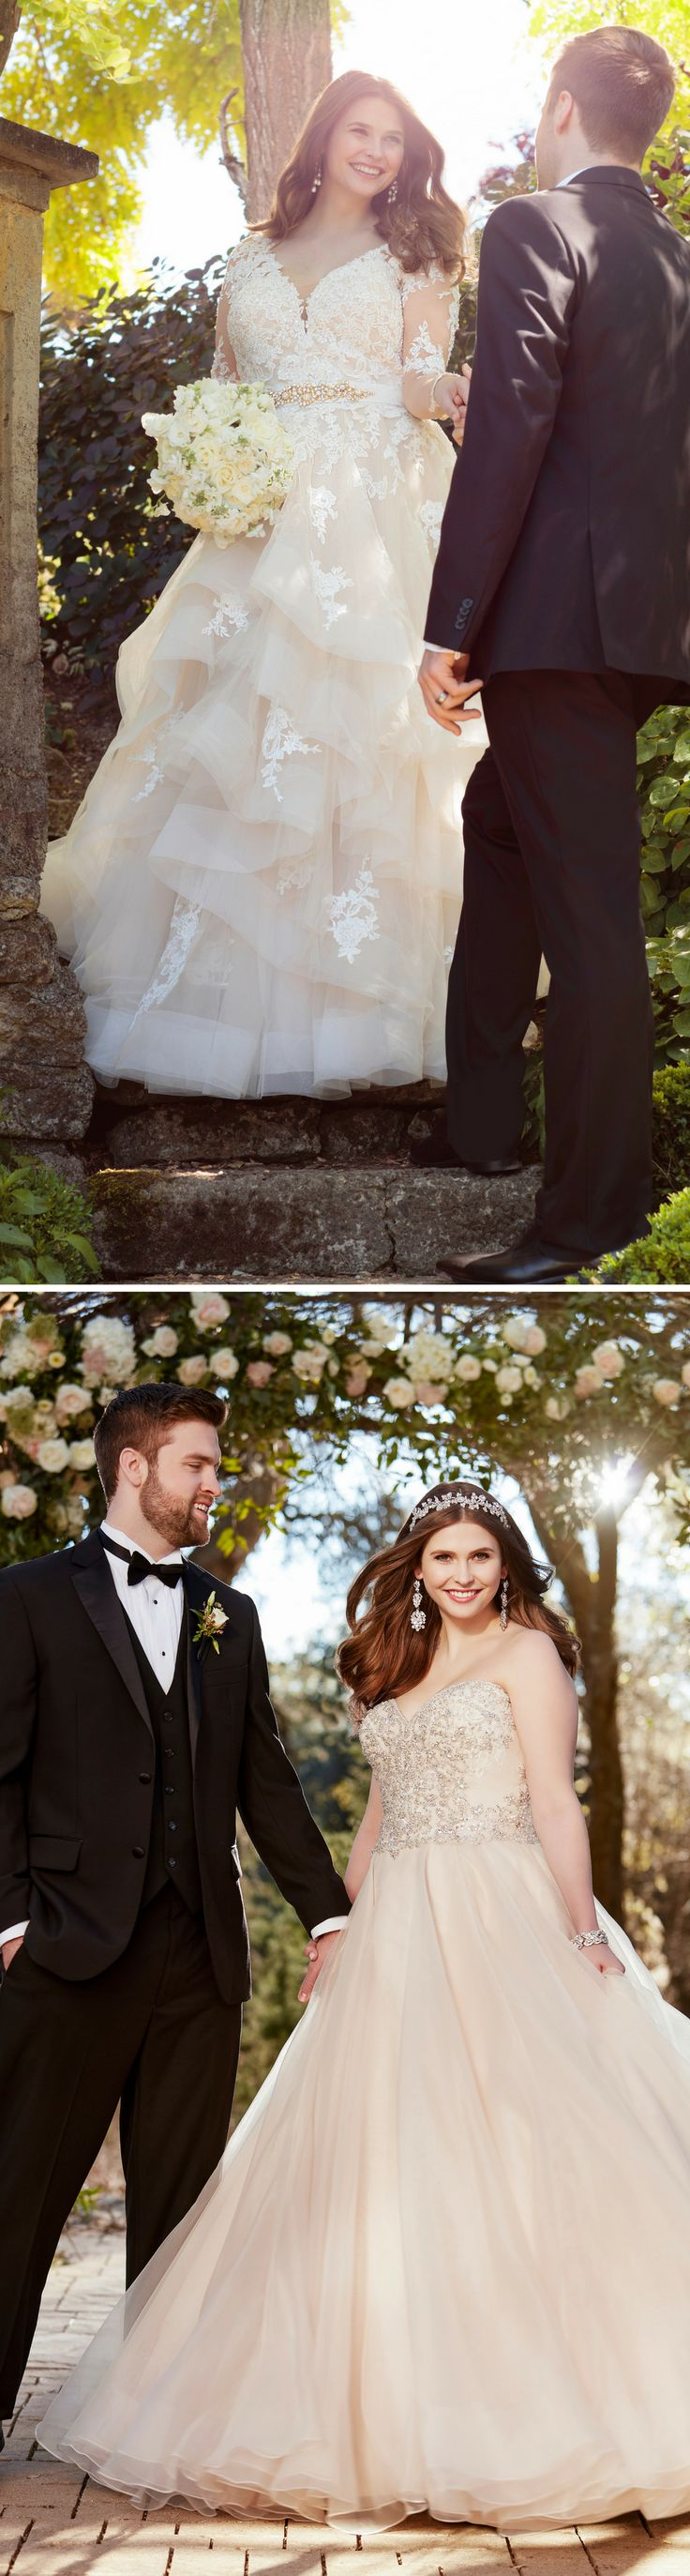 From romantic A-line wedding gowns to fabulous fit and flare bridal styles, the plus size wedding dress of your dreams awaits - no matter your size!